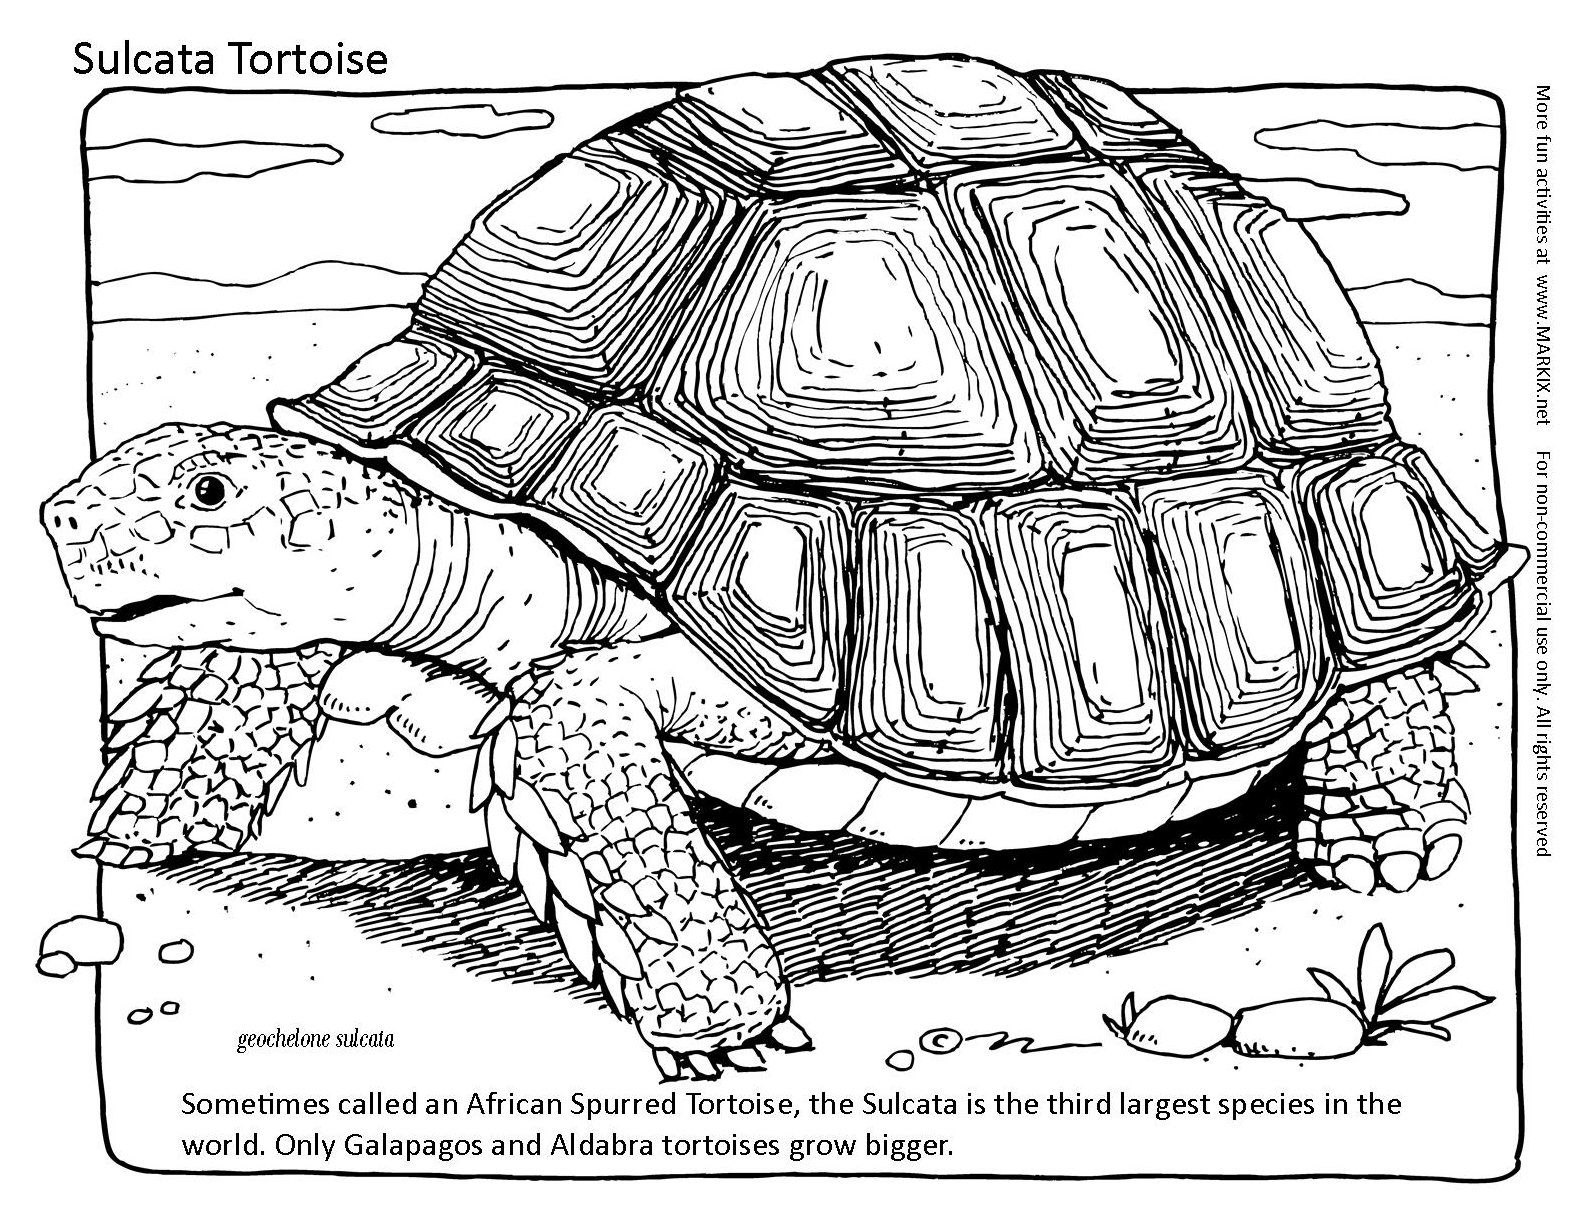 galapagos coloring pages turtle | Tortoise Coloring Page. Sometimes called an African ...